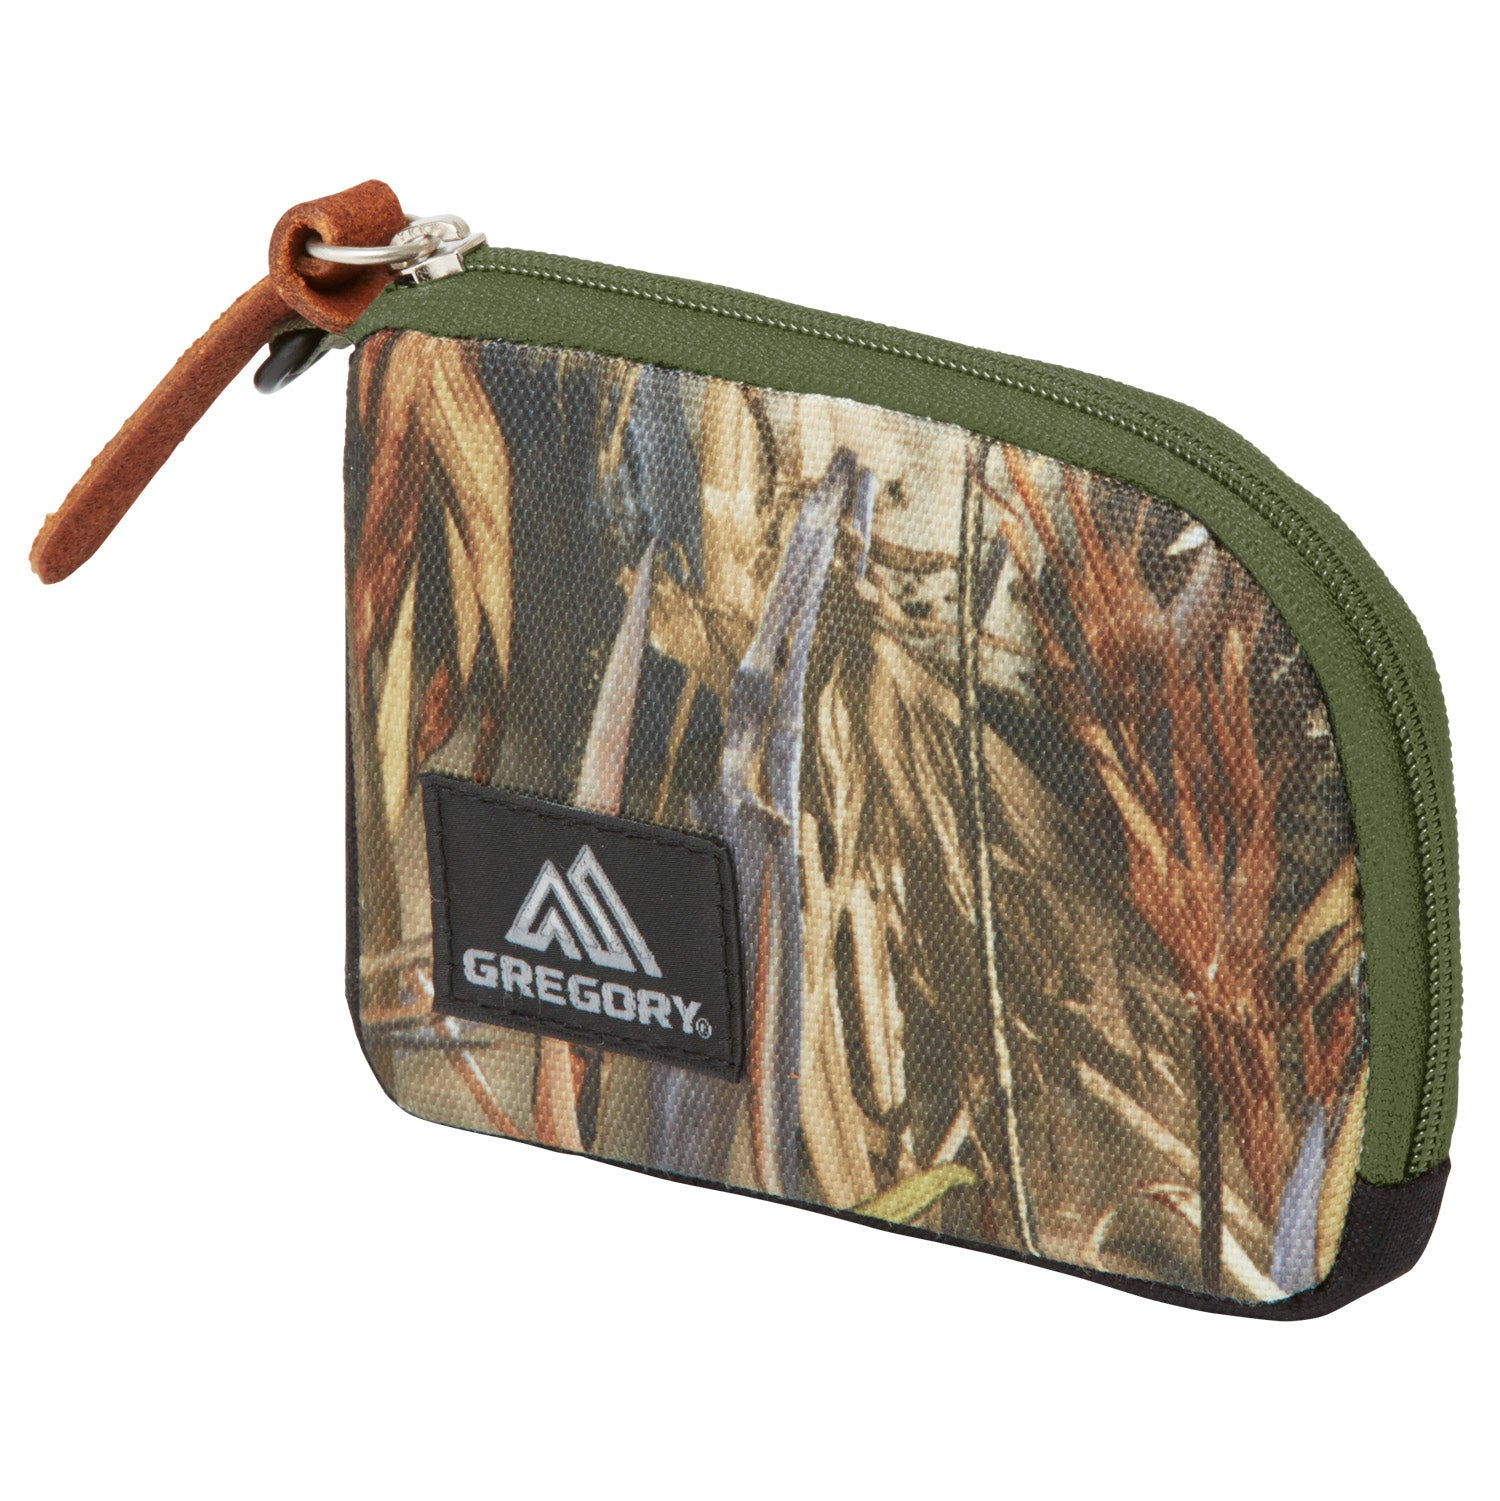 GREGORY COIN WALLET - DRT CAMO - Hock Gift